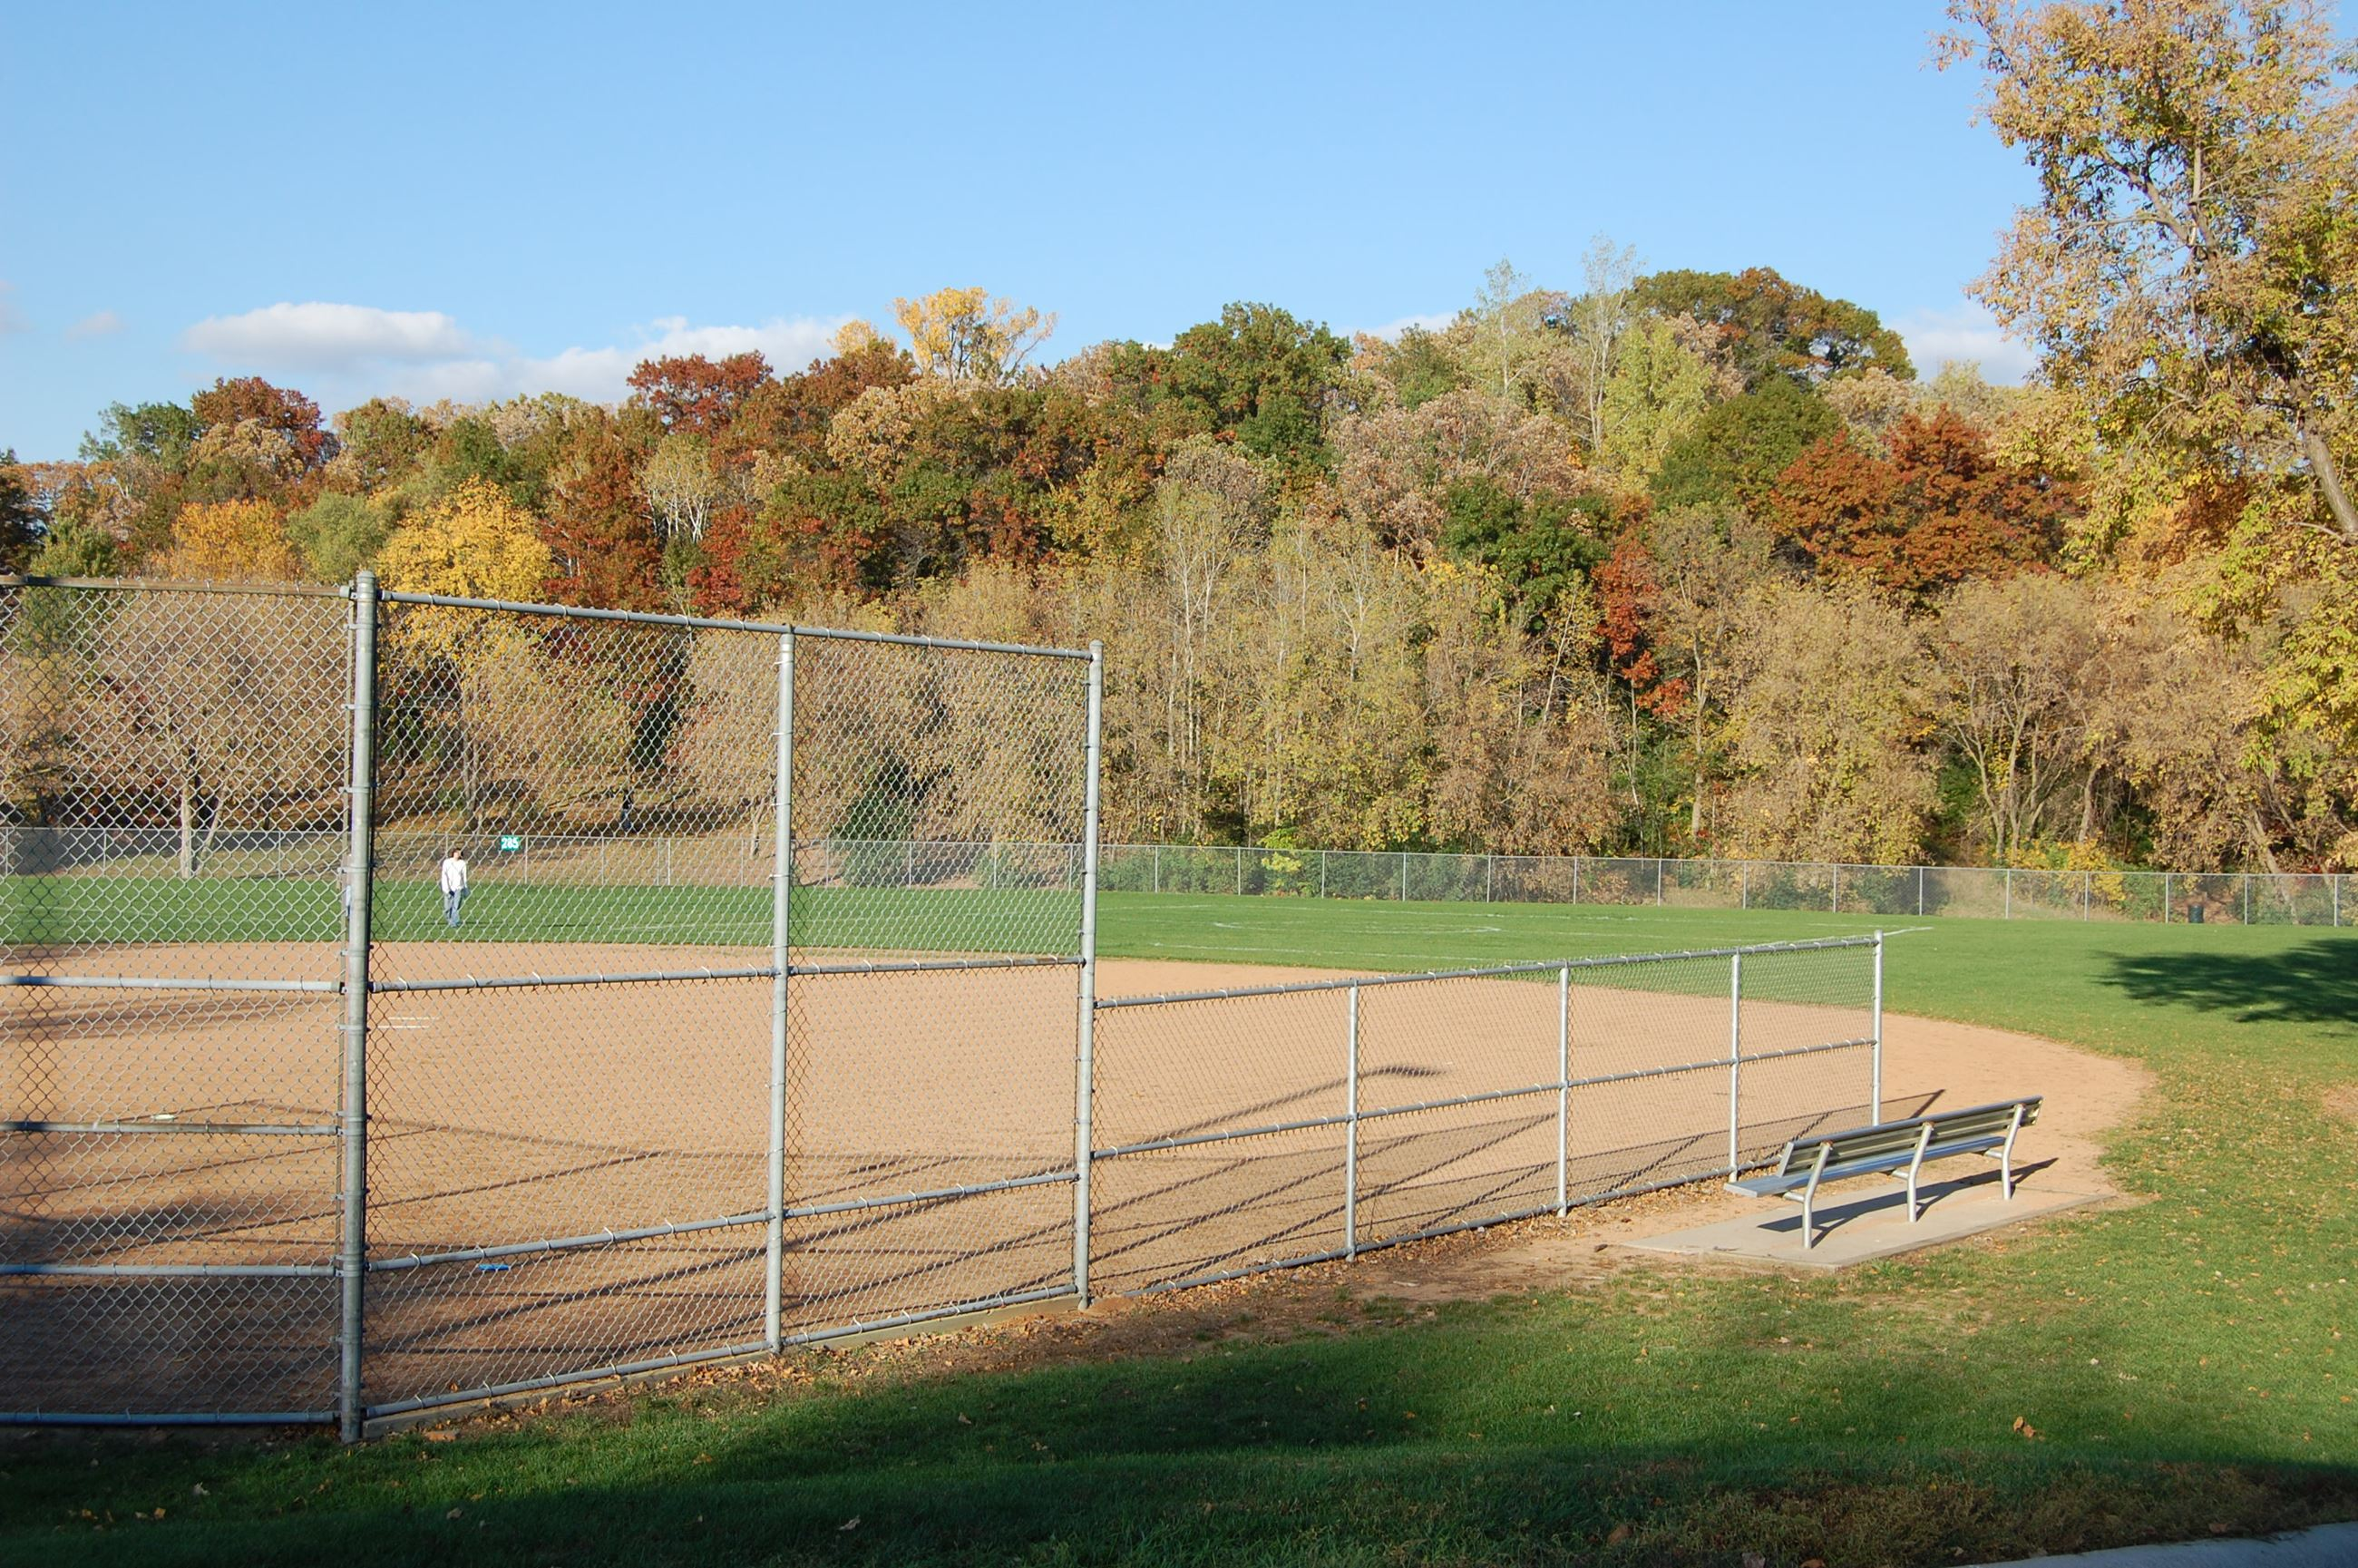 North Valley Park Baseball Field